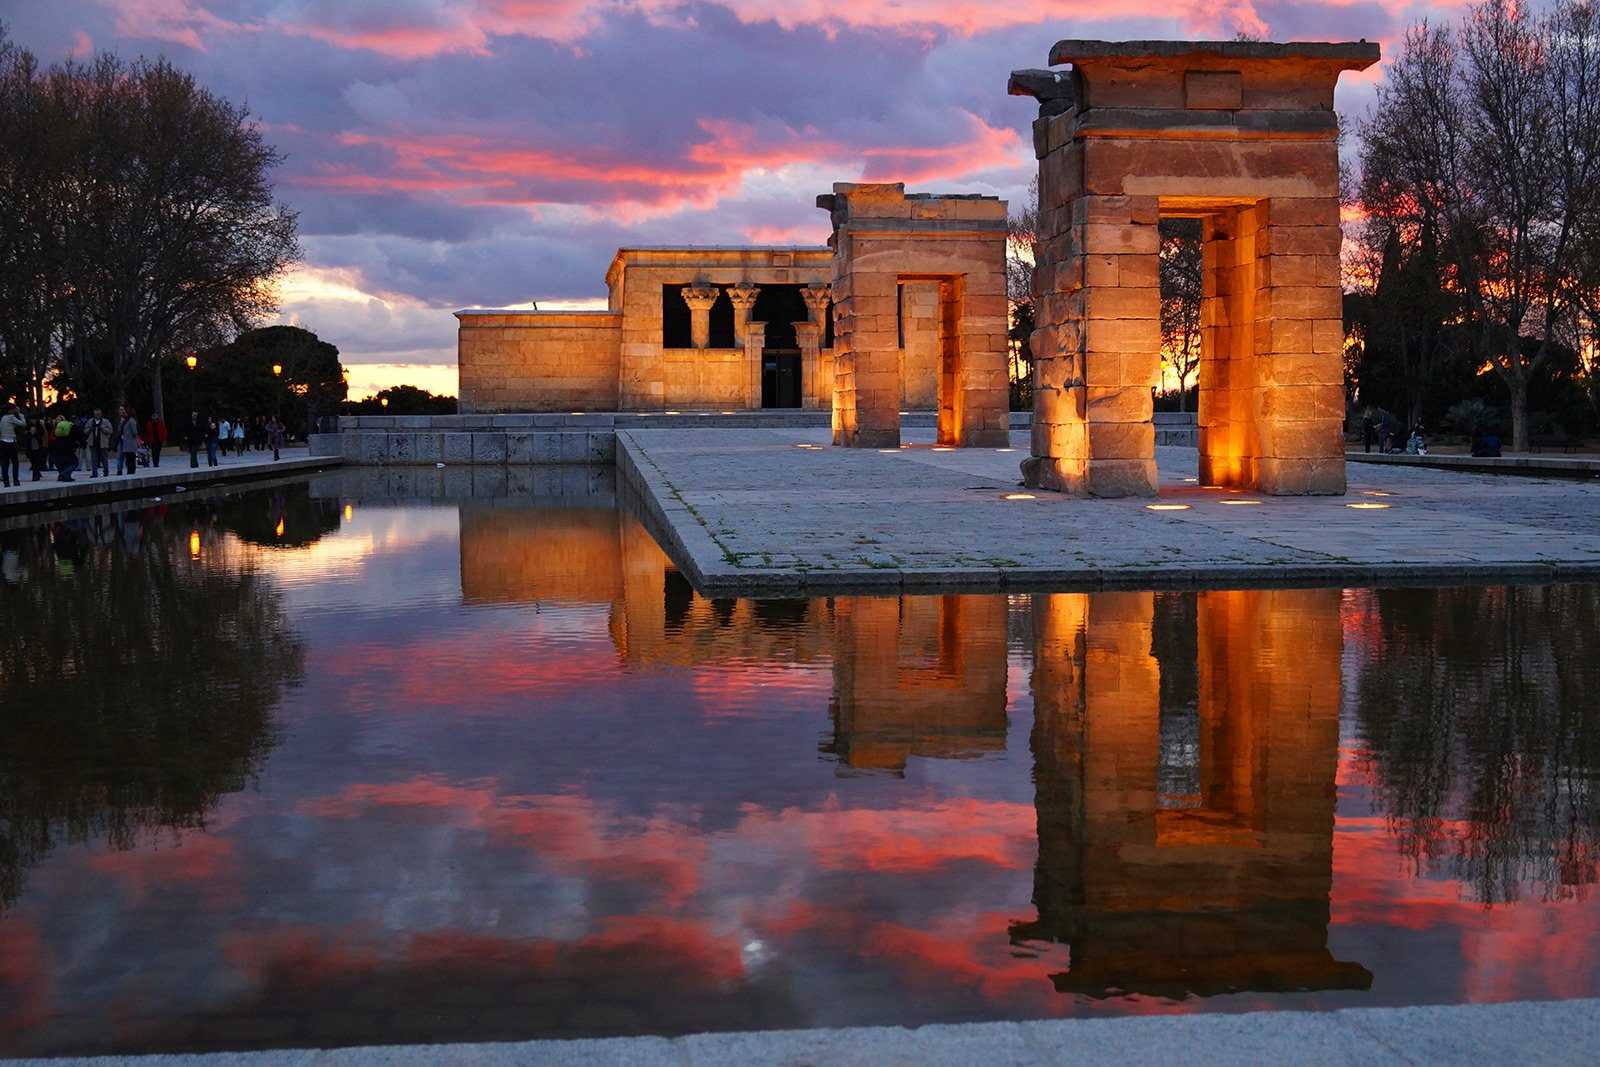 How to see the sunset on the observation deck of the Egyptian temple in Madrid